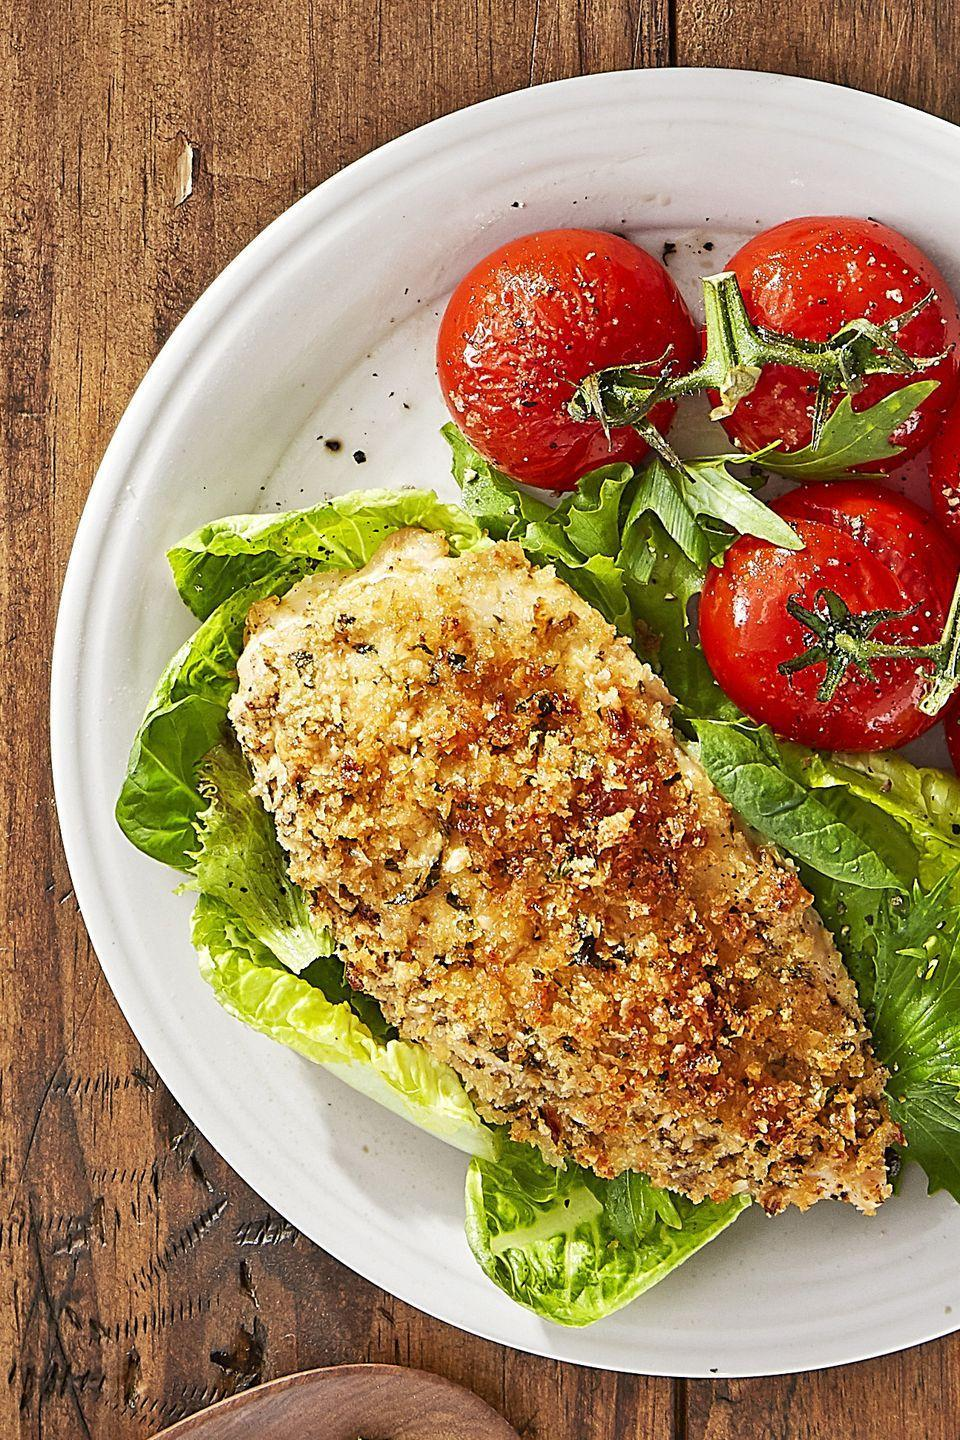 """<p>Parmesan and panko bring the crunch, while bursting Campari tomatoes bring the juice.</p><p><strong><a href=""""https://www.countryliving.com/food-drinks/recipes/a44271/roasted-parmesan-chicken-tomatoes-recipe/"""" rel=""""nofollow noopener"""" target=""""_blank"""" data-ylk=""""slk:Get the recipe"""" class=""""link rapid-noclick-resp"""">Get the recipe</a>.</strong></p>"""